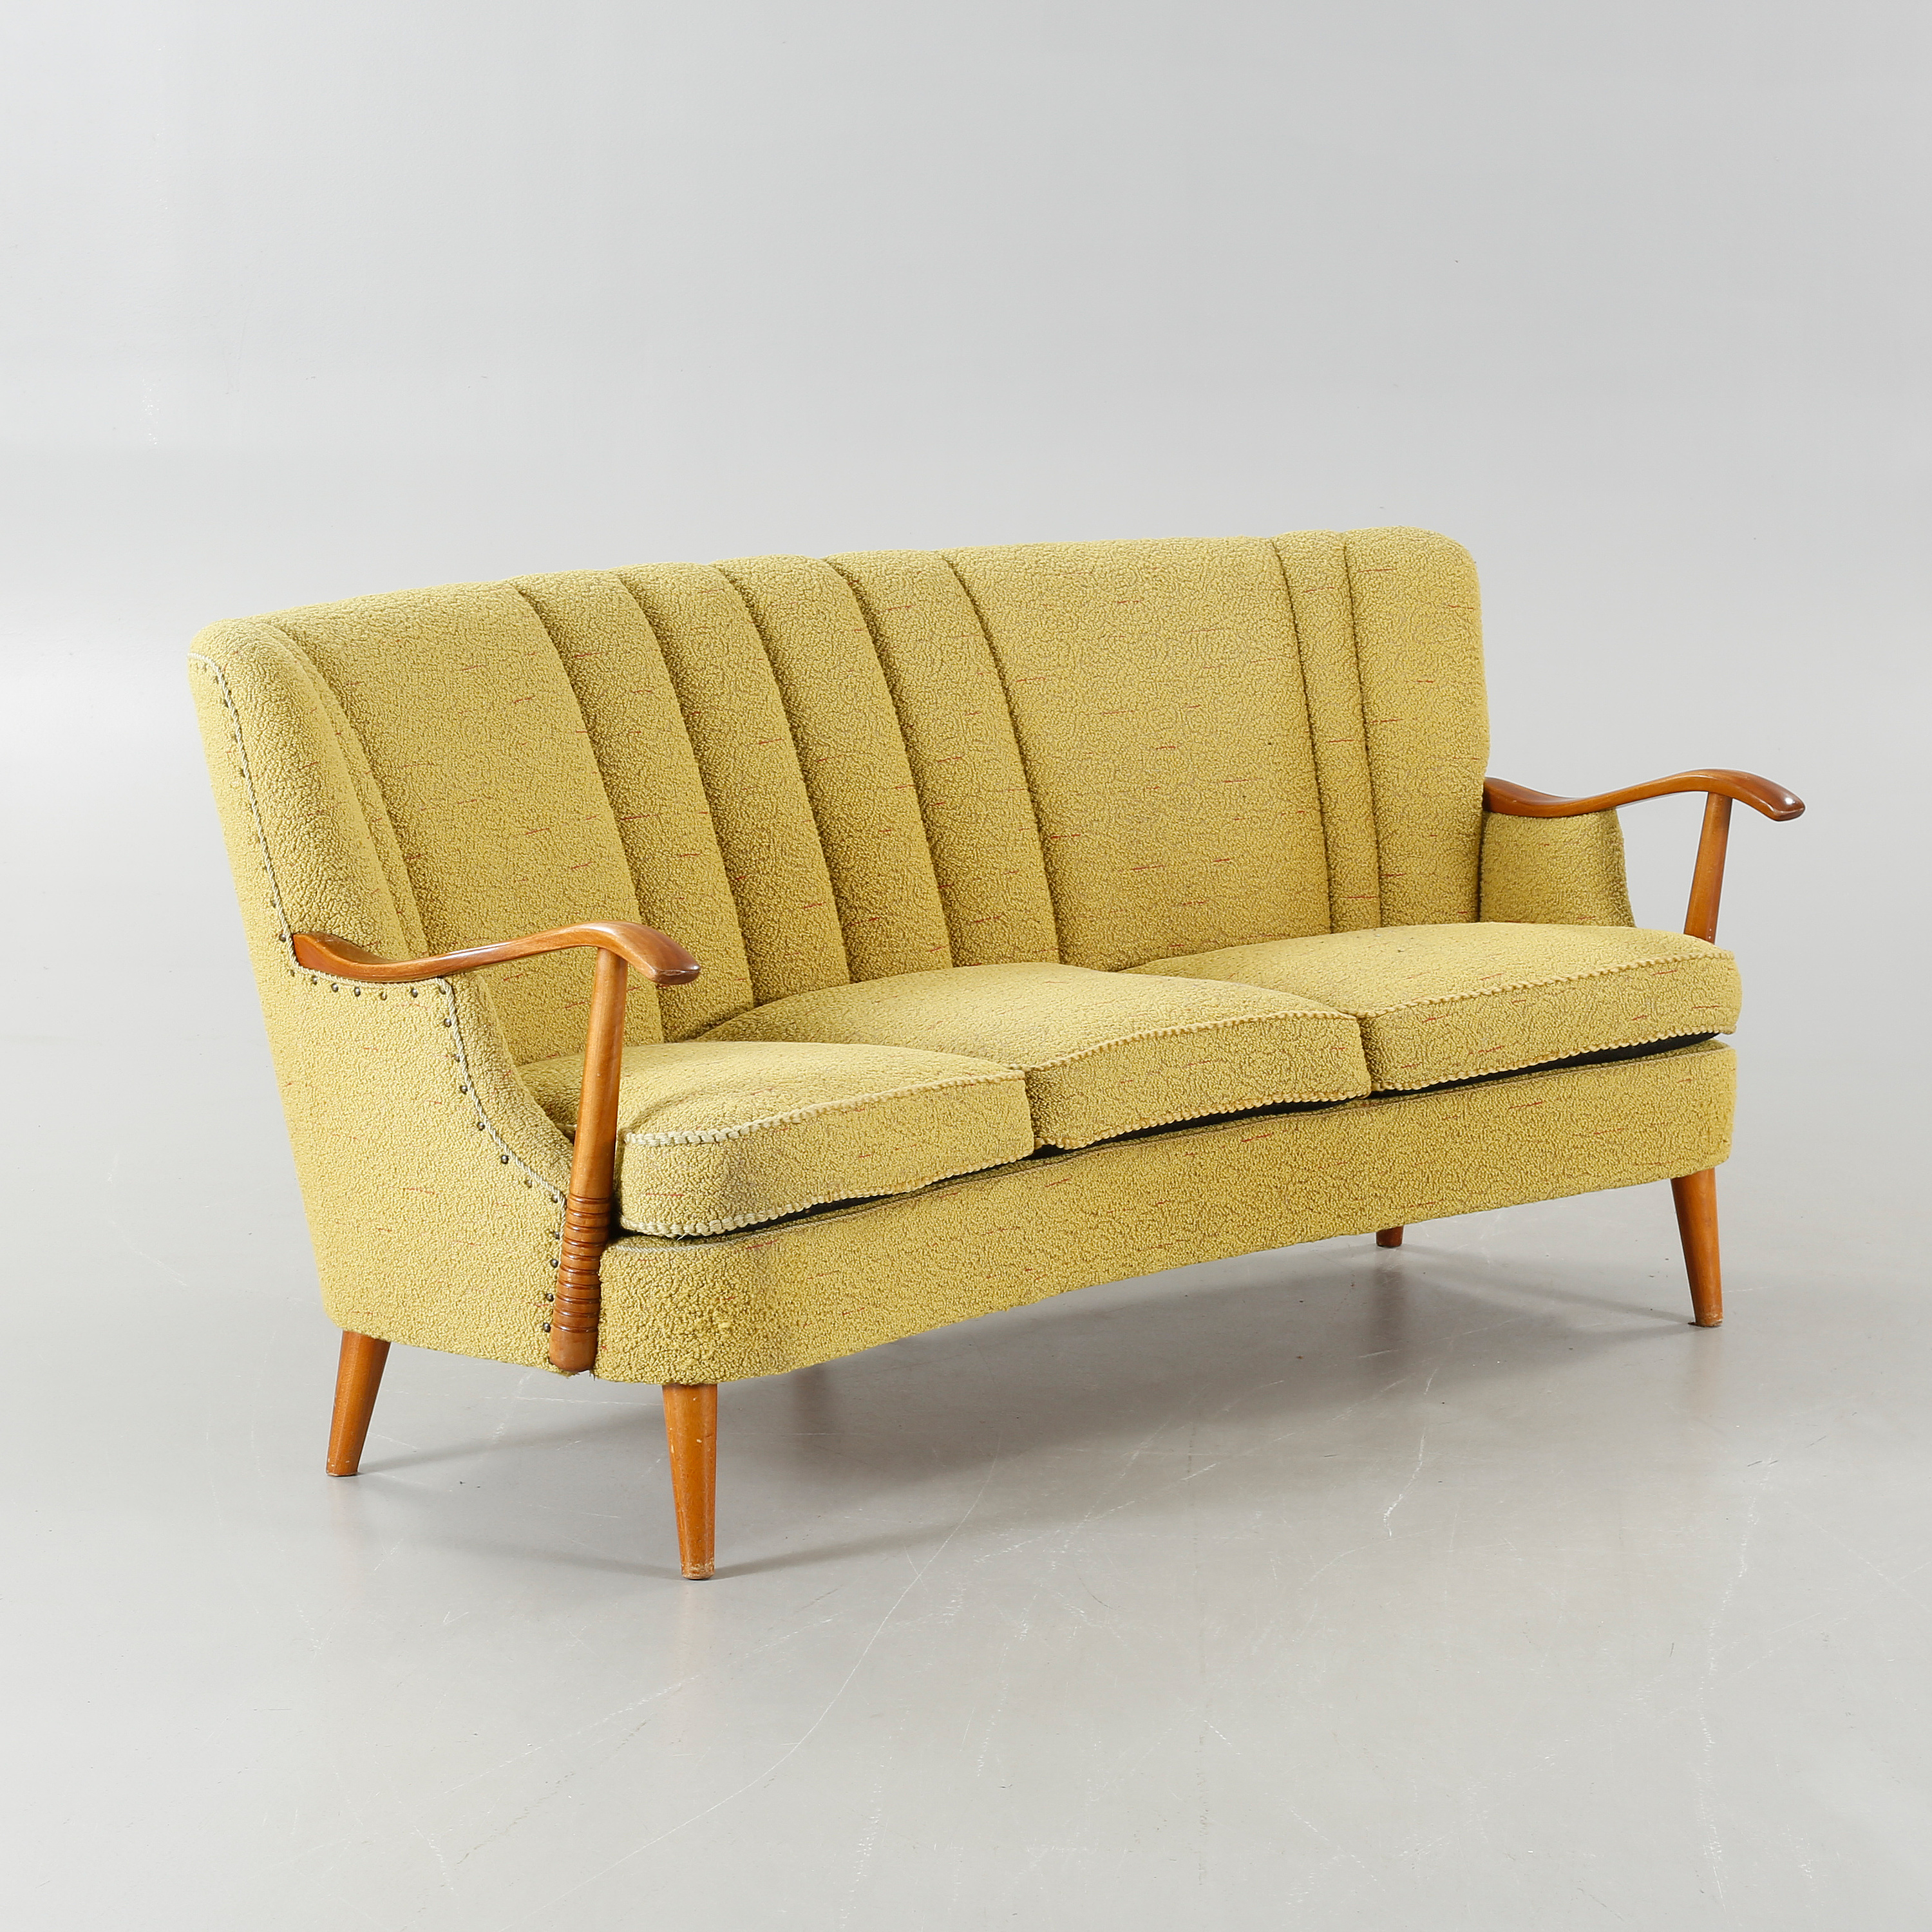 a sofa in the forties chateau d ax leather 1940s bukowskis